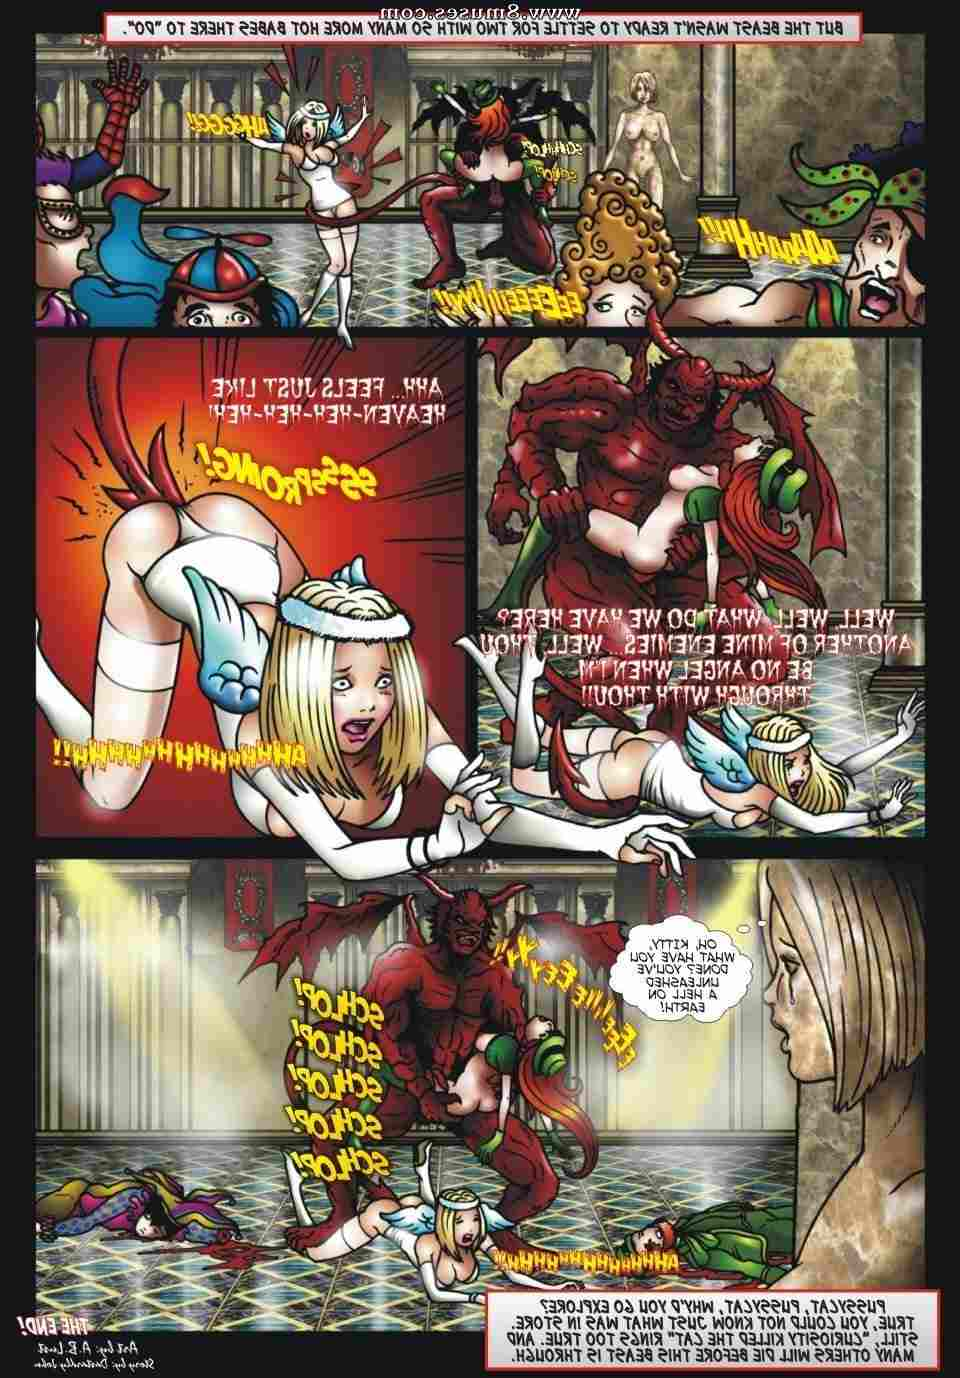 Central-Comics/Horror-Babe-Central/Fable-of-Fright Fable_of_Fright__8muses_-_Sex_and_Porn_Comics_136.jpg